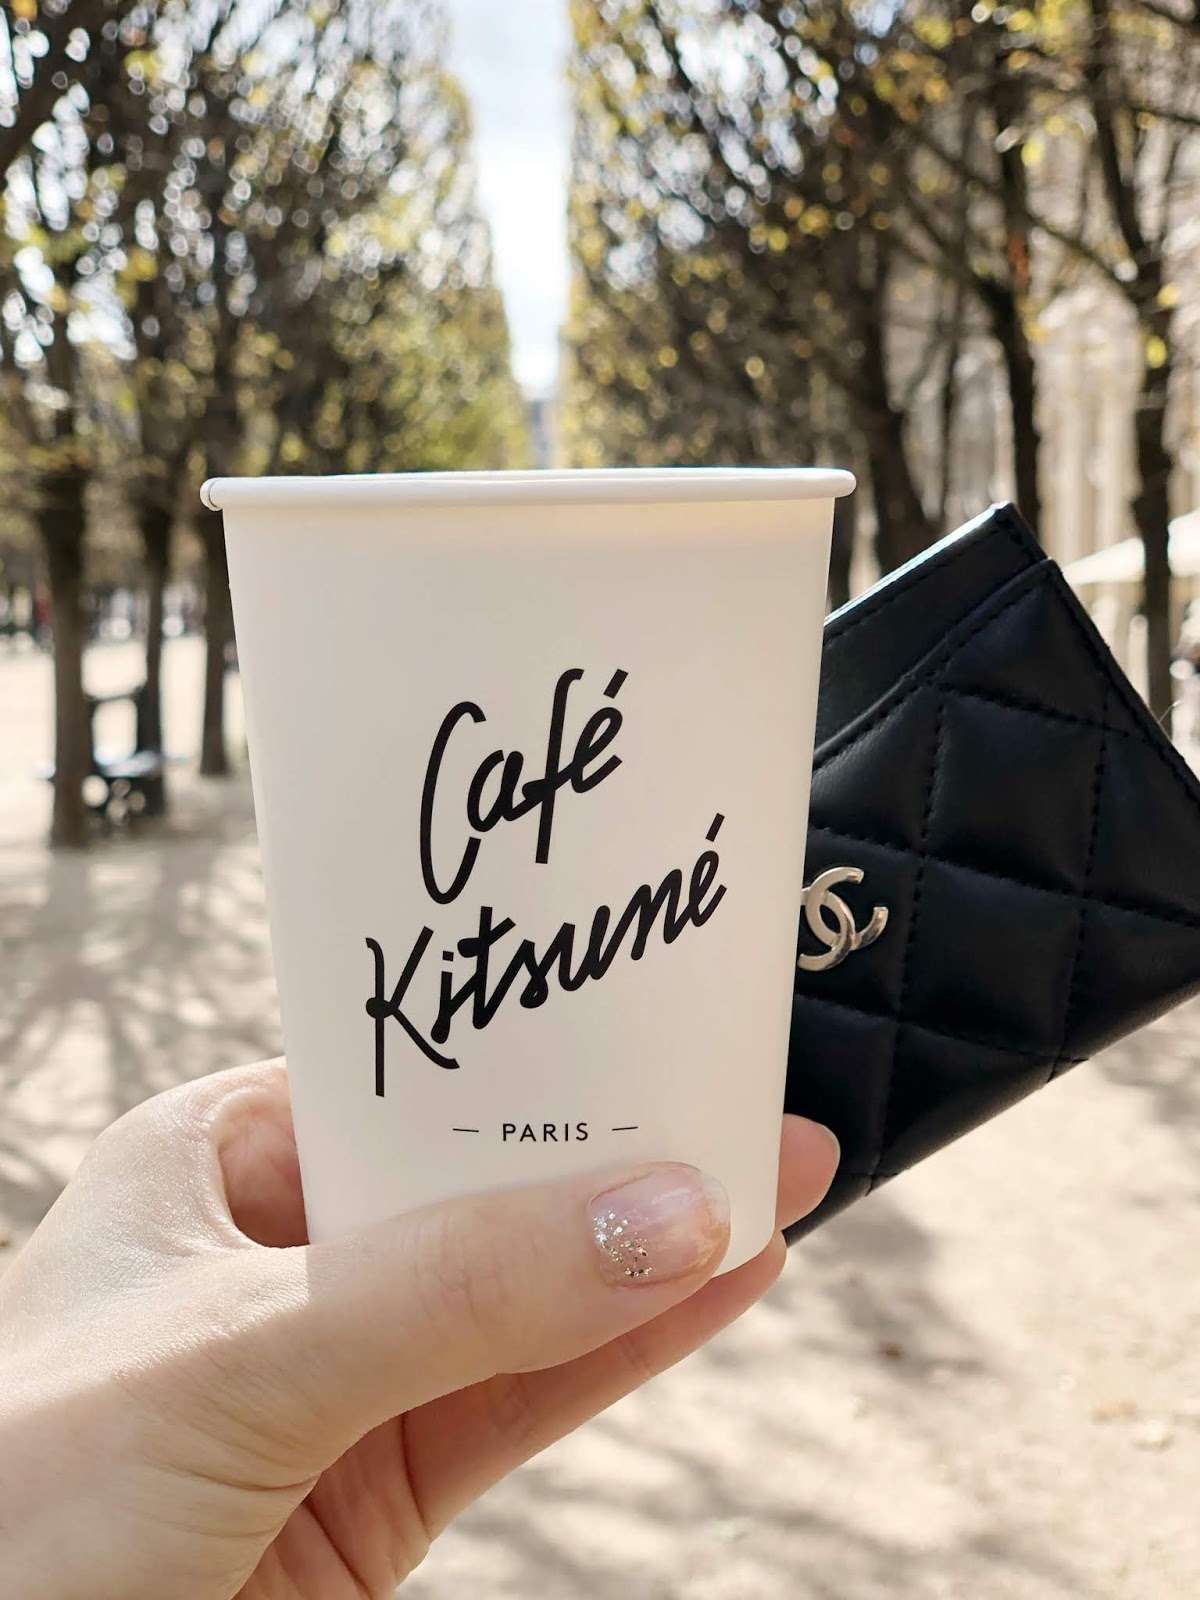 Café Kitsune, Paris in Autumn, Fall in Paris, Coffee, Palais Royal, Chanel Card Holder, City Guide, Paris City Guide, missvoguevoyage, Patricia petit, photography, Paris, Paris vibes, Paris style, lifestyleblogger, travel diaries